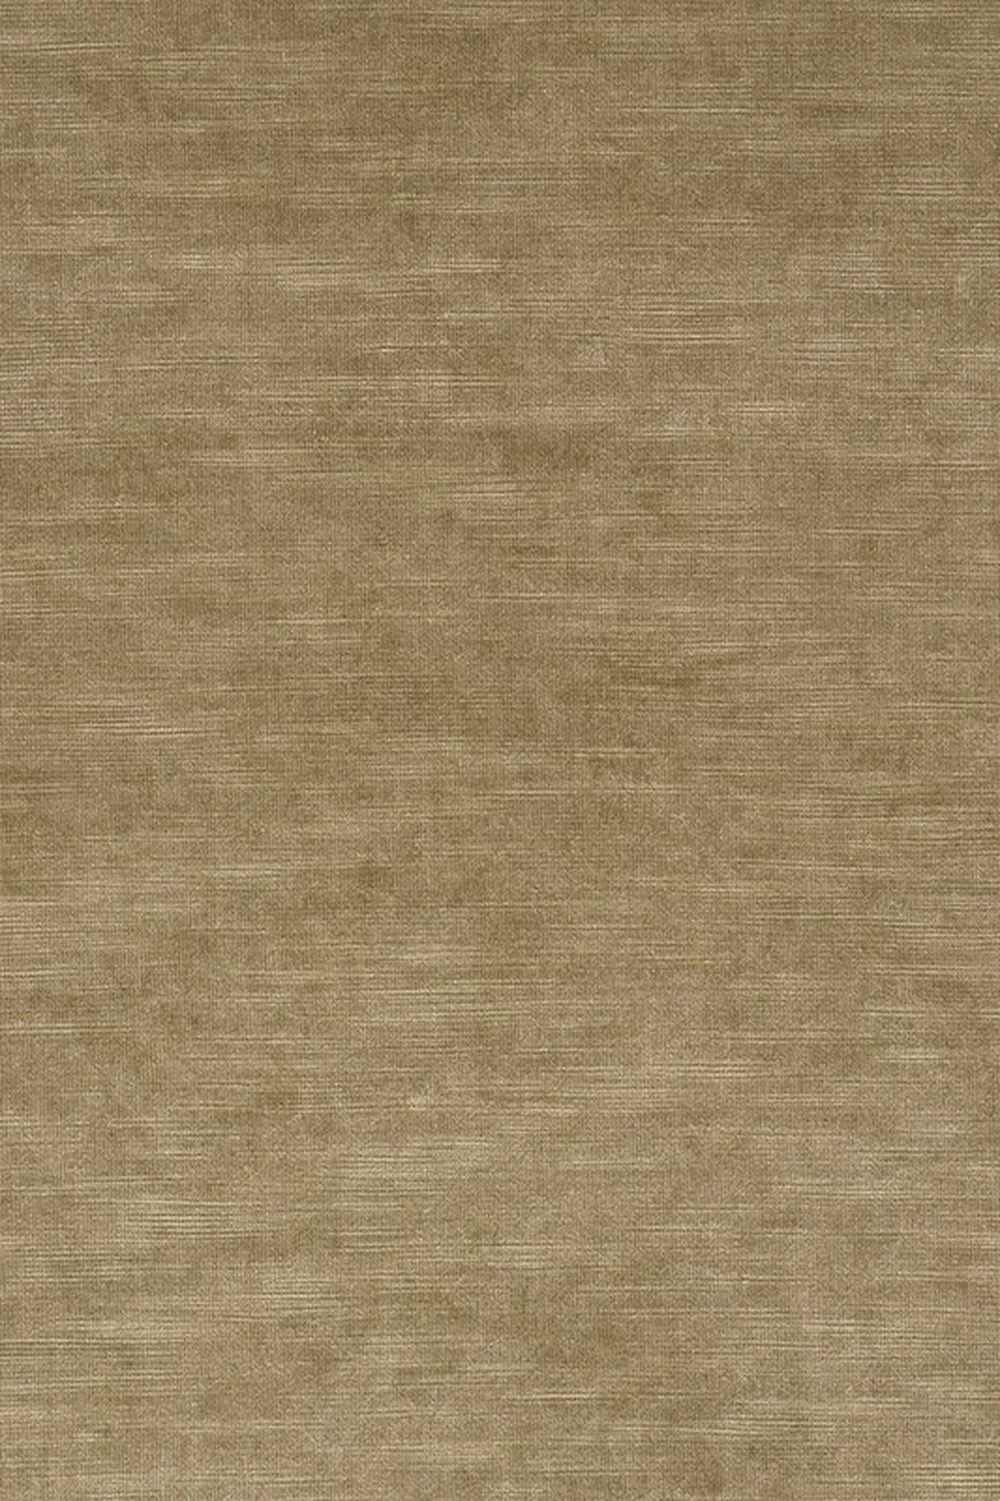 Photo of the fabric Vintage Sandstone swatch by Mokum. Use for Upholstery Heavy Duty, Accessory. Style of Plain, Velvet